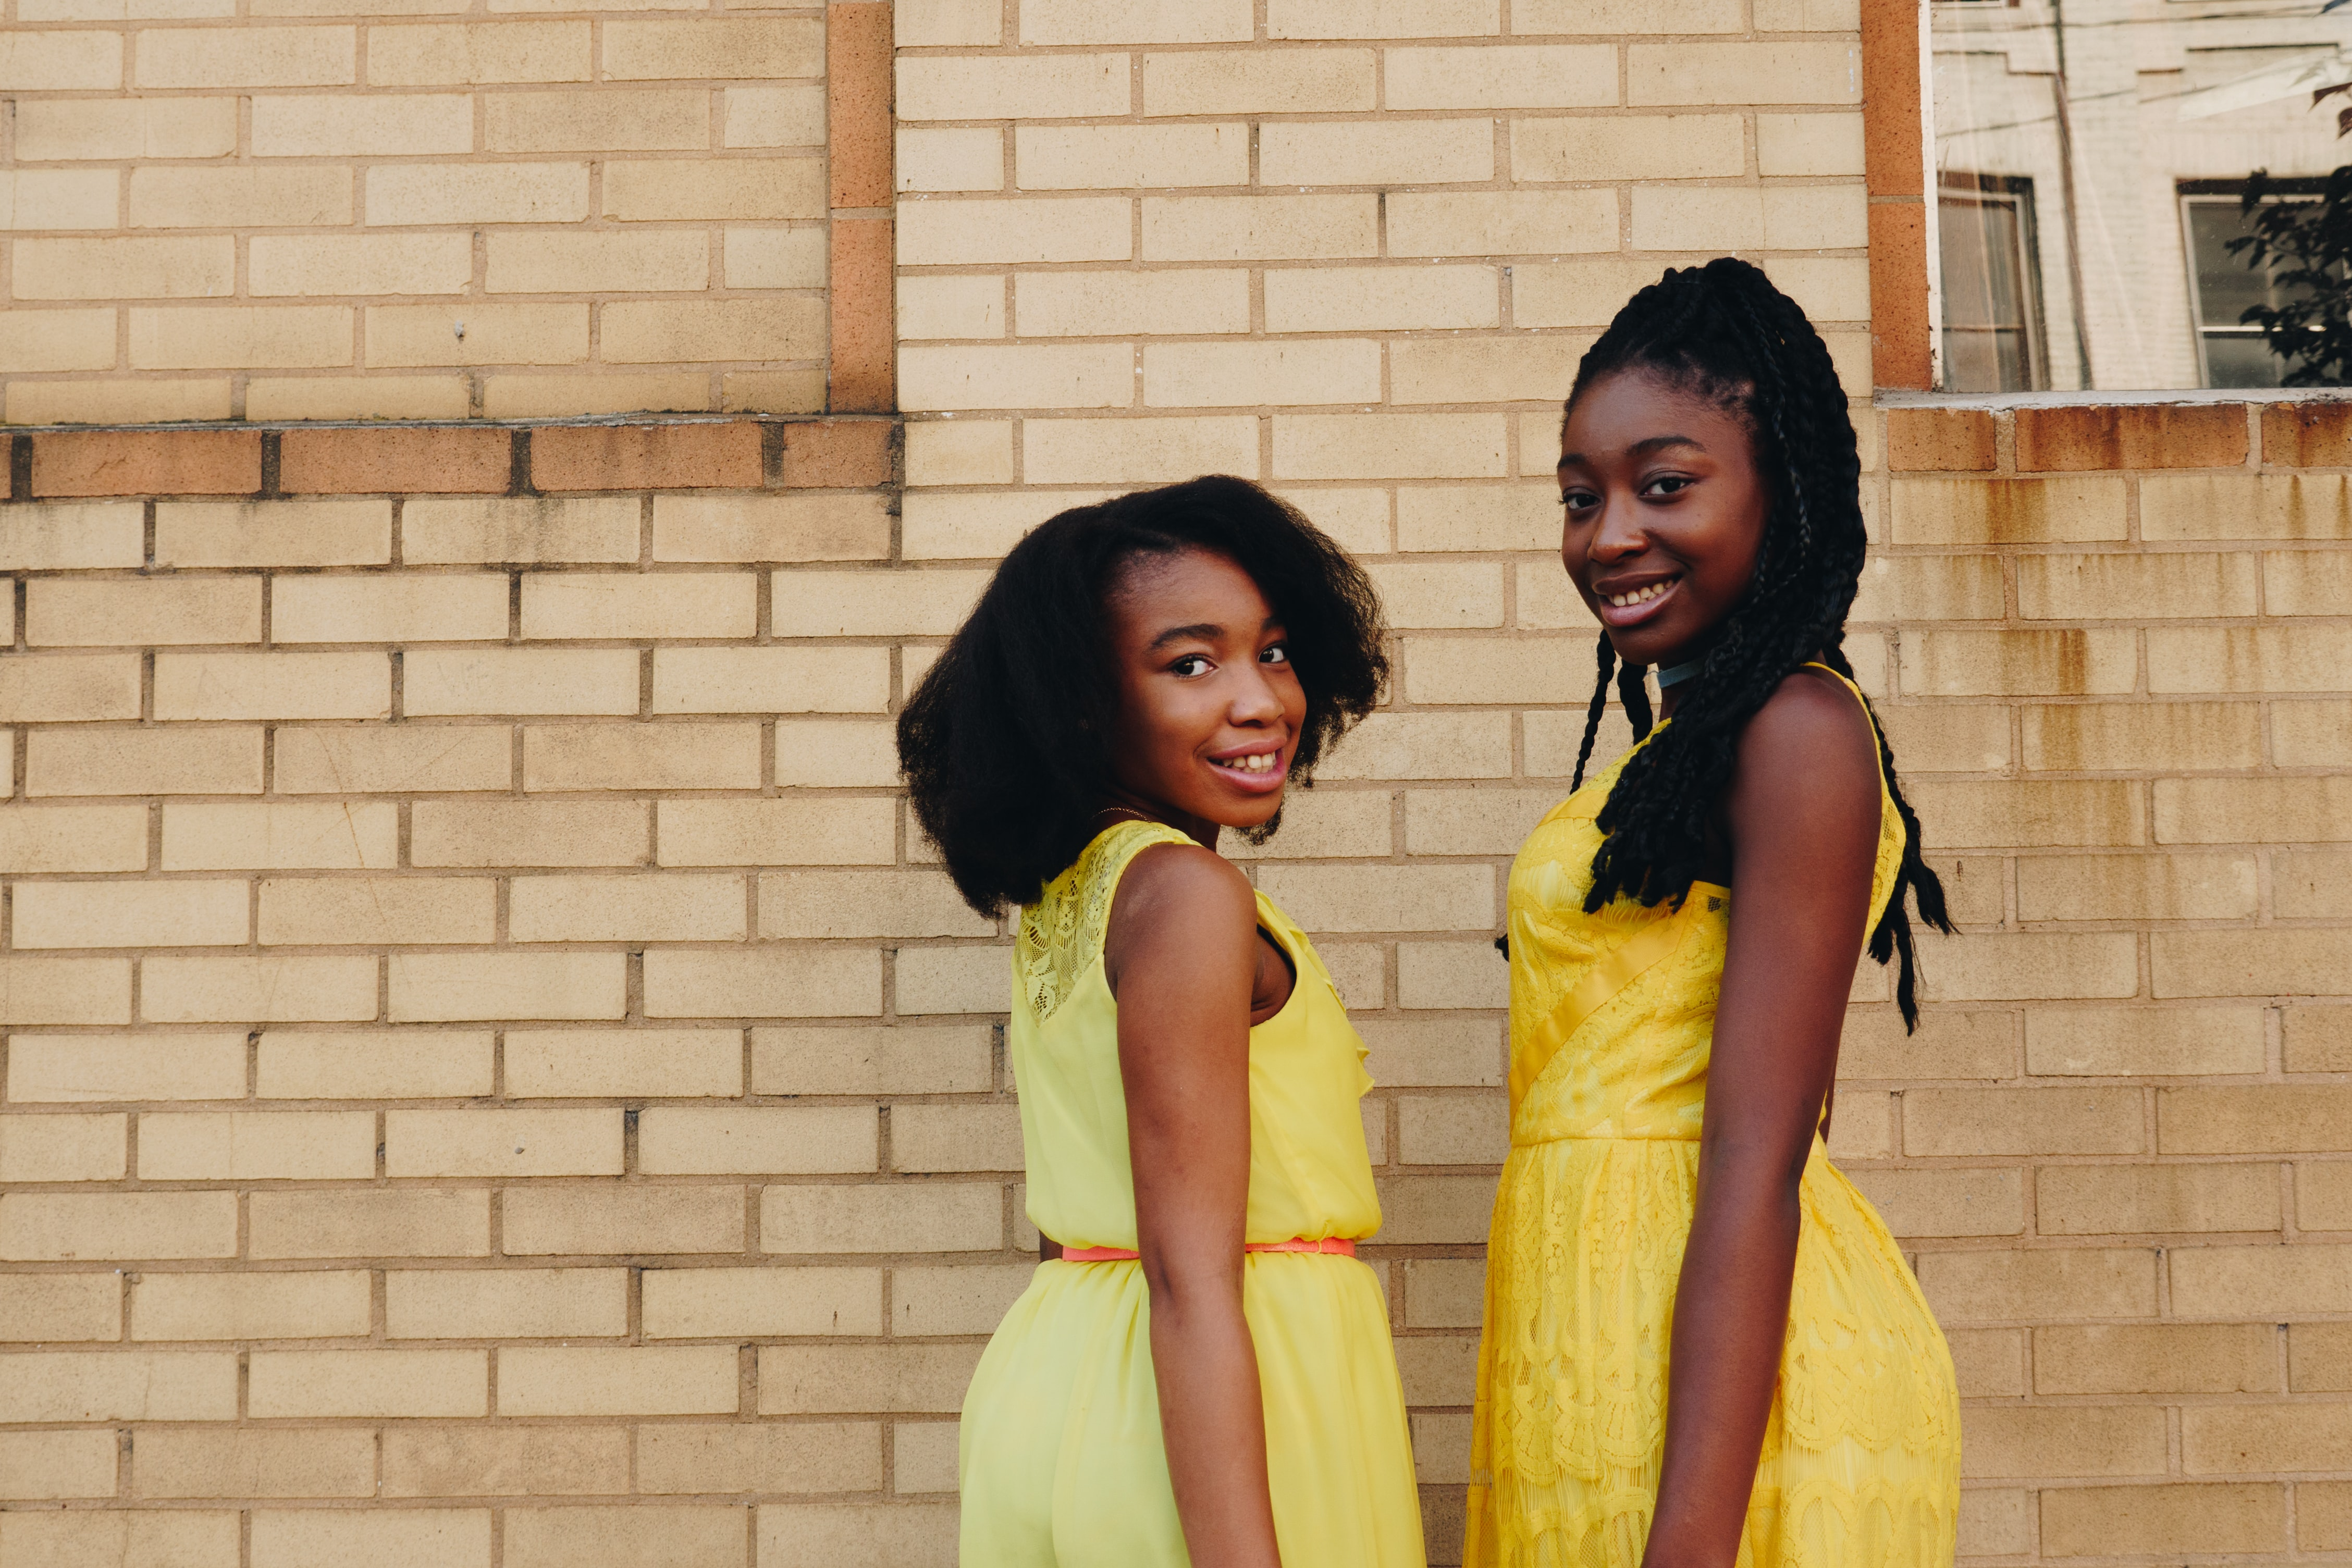 two women wearing yellow sleeveless dresses near brown brick